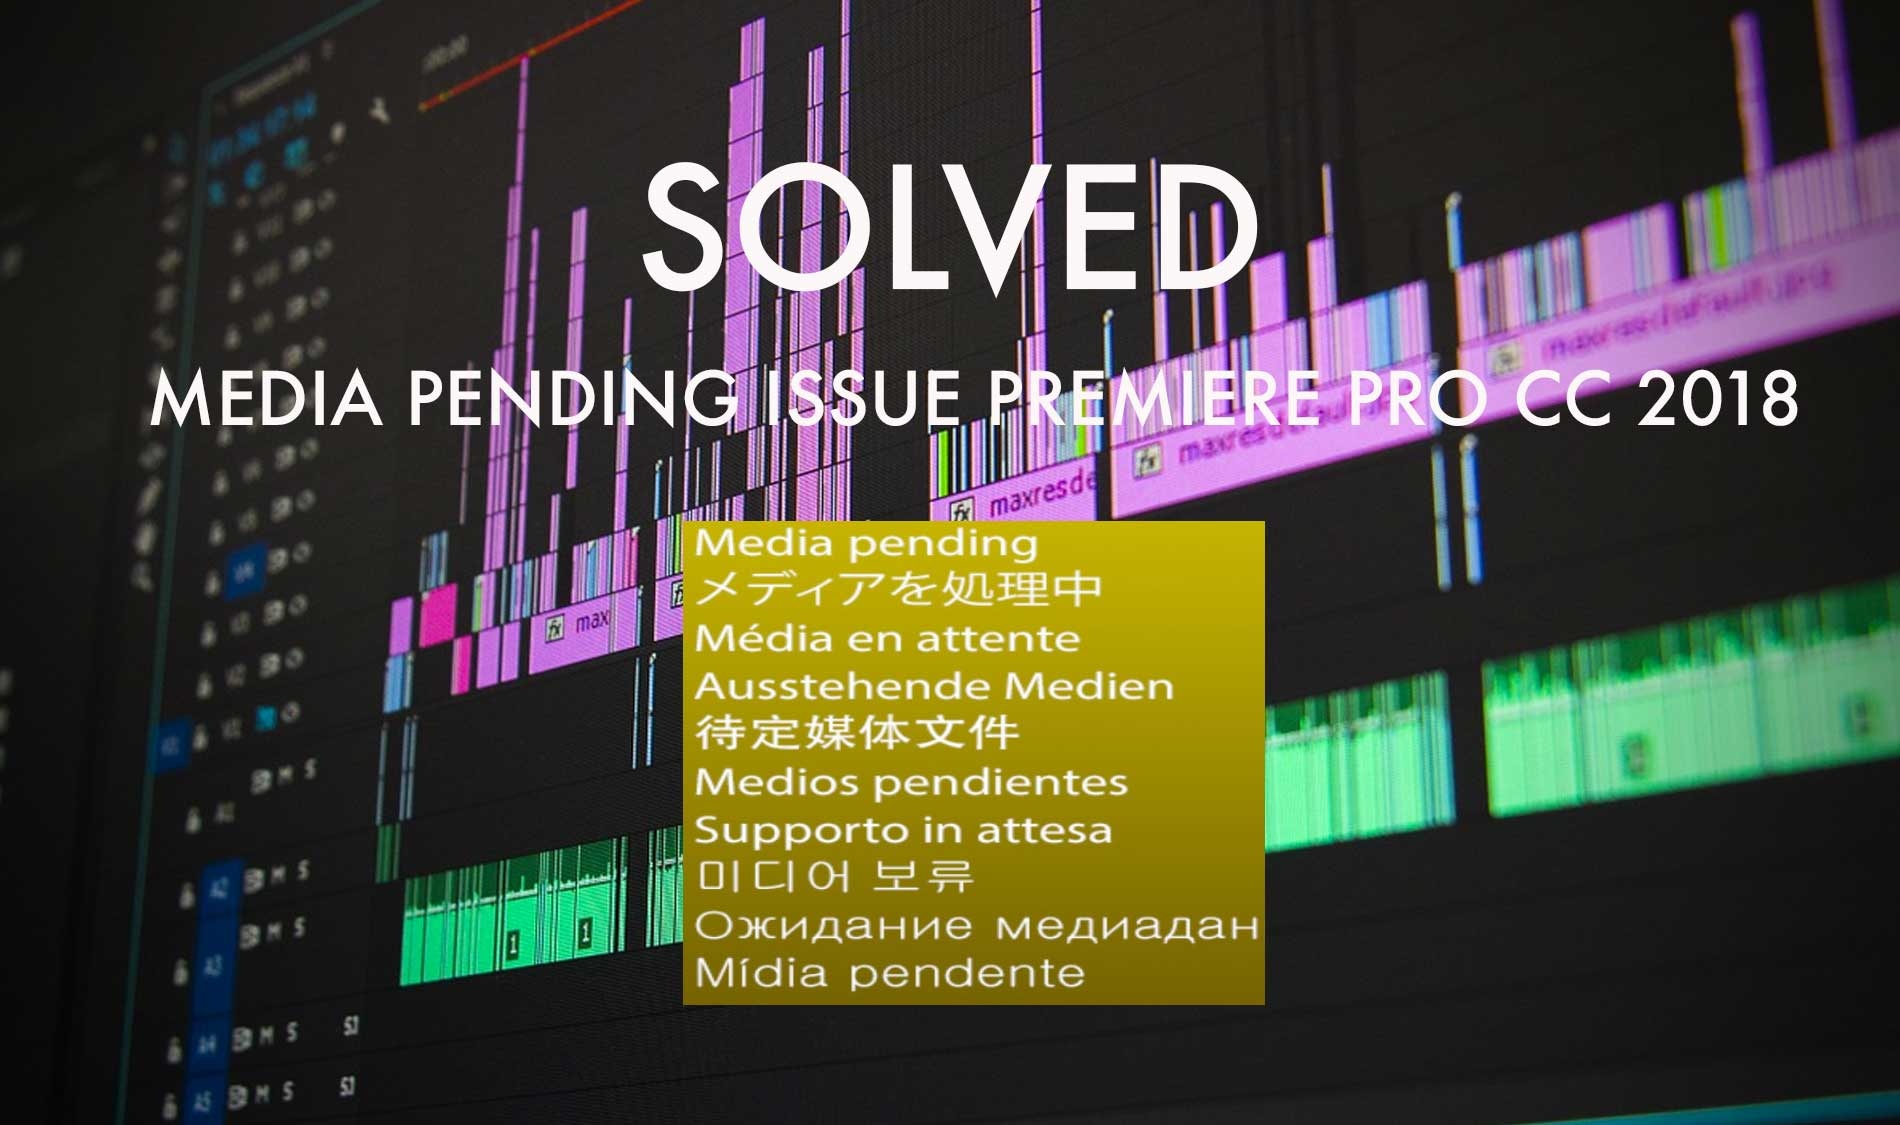 Premiere-Pro-CC-2018-Media-Pending-featured-Forever-Enable-Dont-work-Either